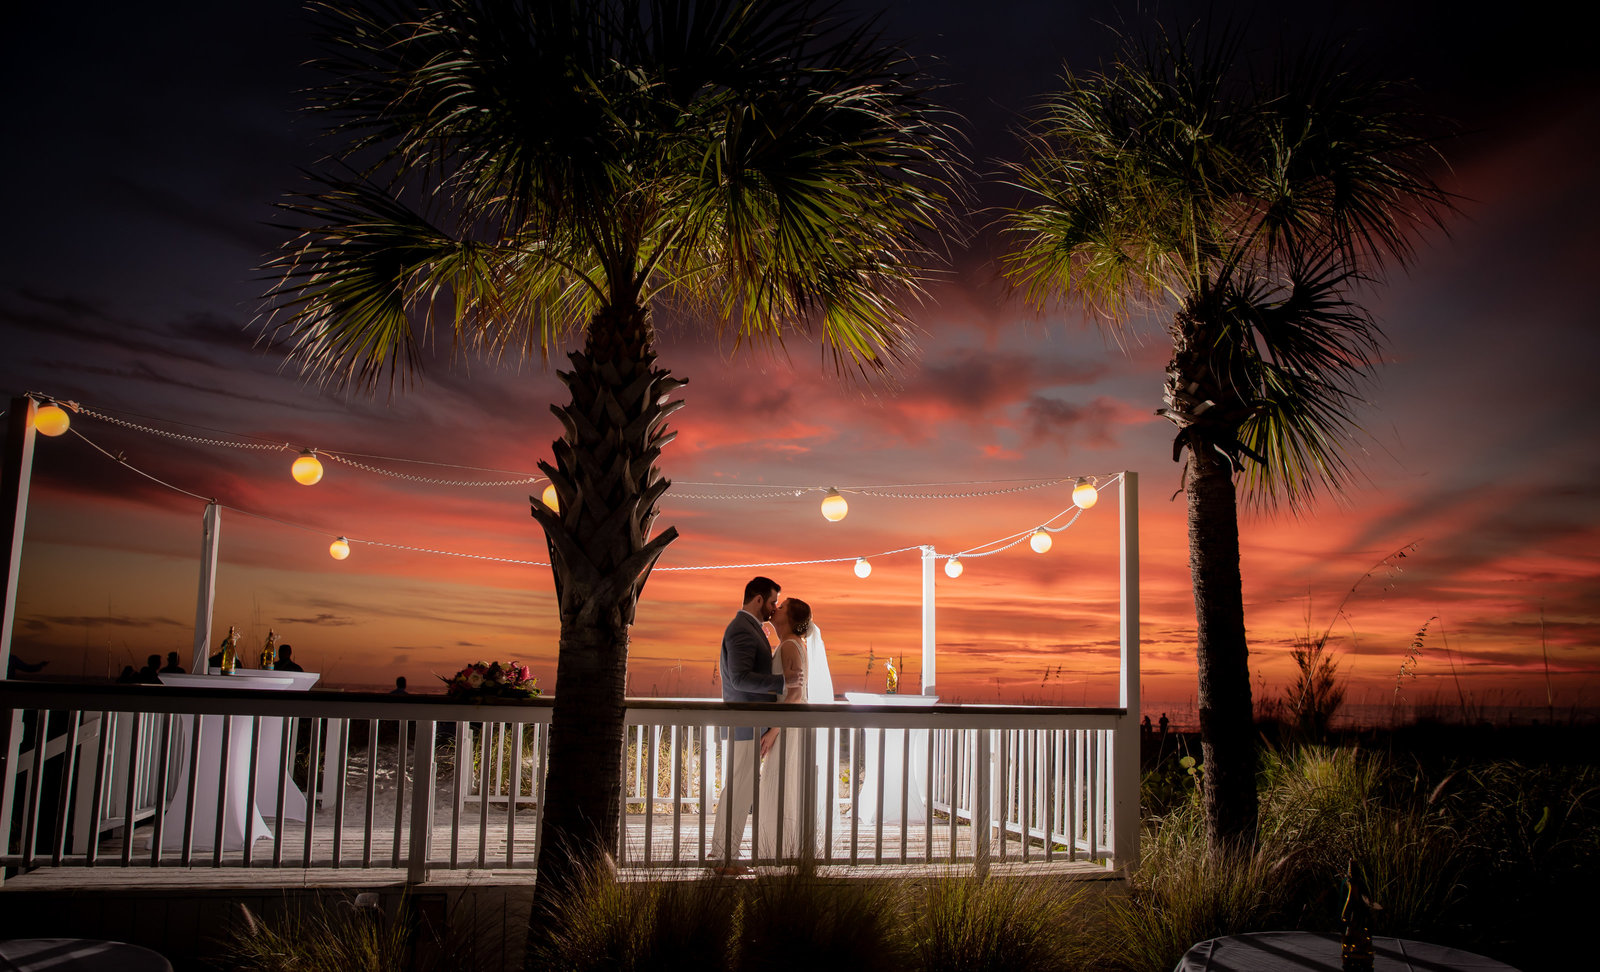 Backlight shot of bride and groom at sunset at The Sandbar in Bradenton, Florida